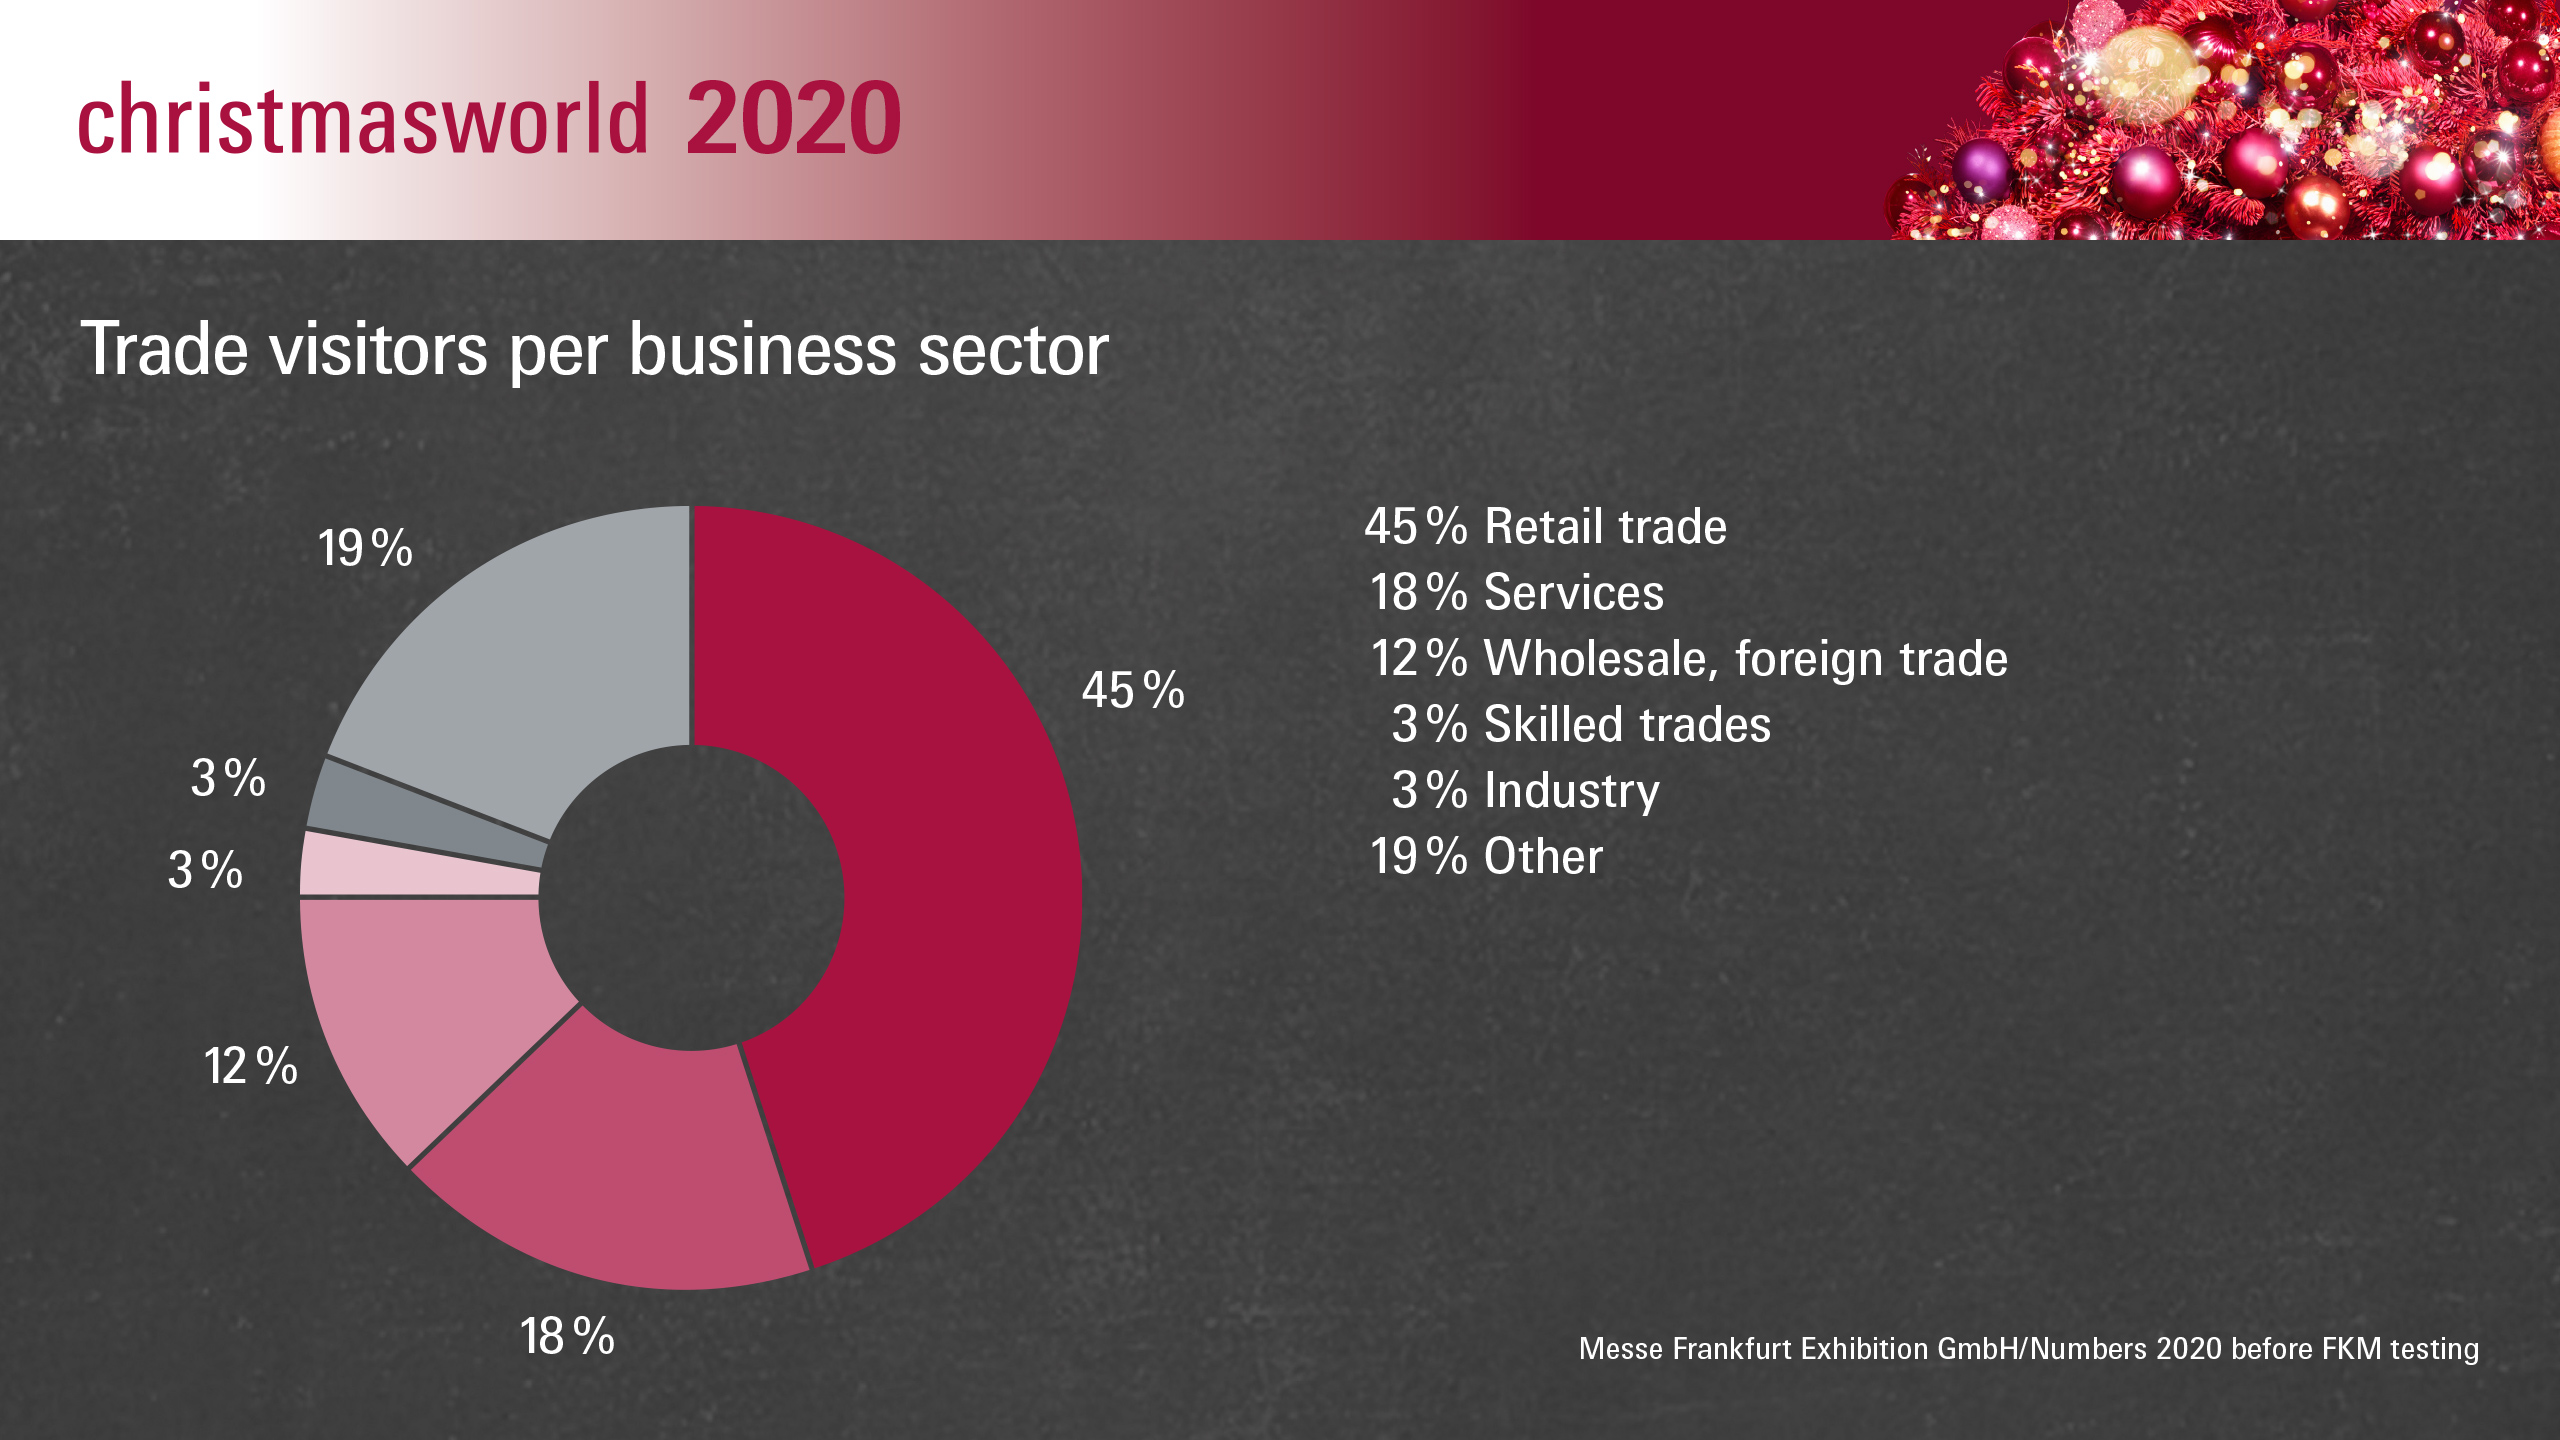 Christmasworld 2020: Trade visitors per business sector